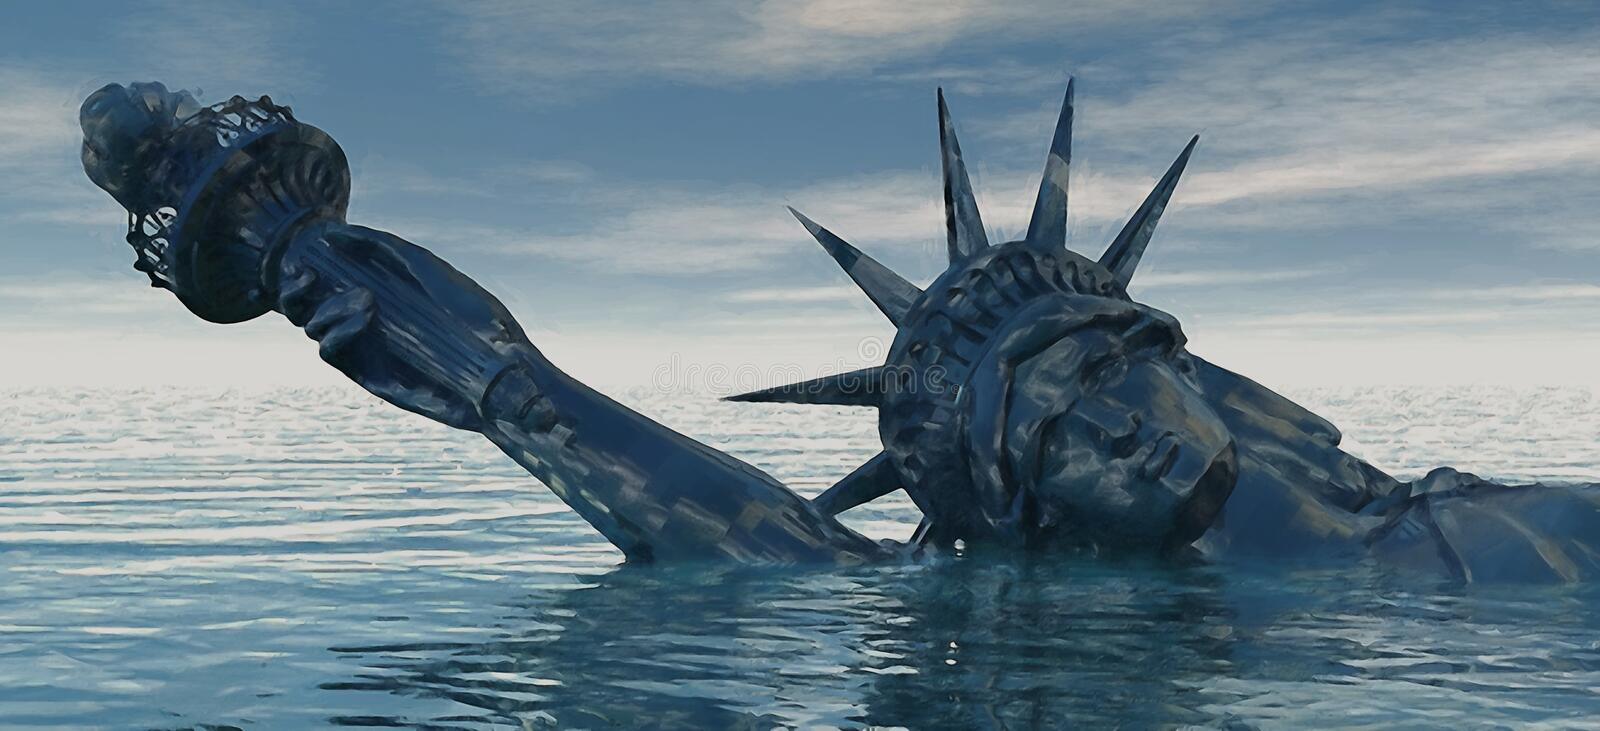 Catastrophic Climate Change. Abstract concept for global warming and climate change. Statue of Liberty representing freedom and liberty drowns in rising water